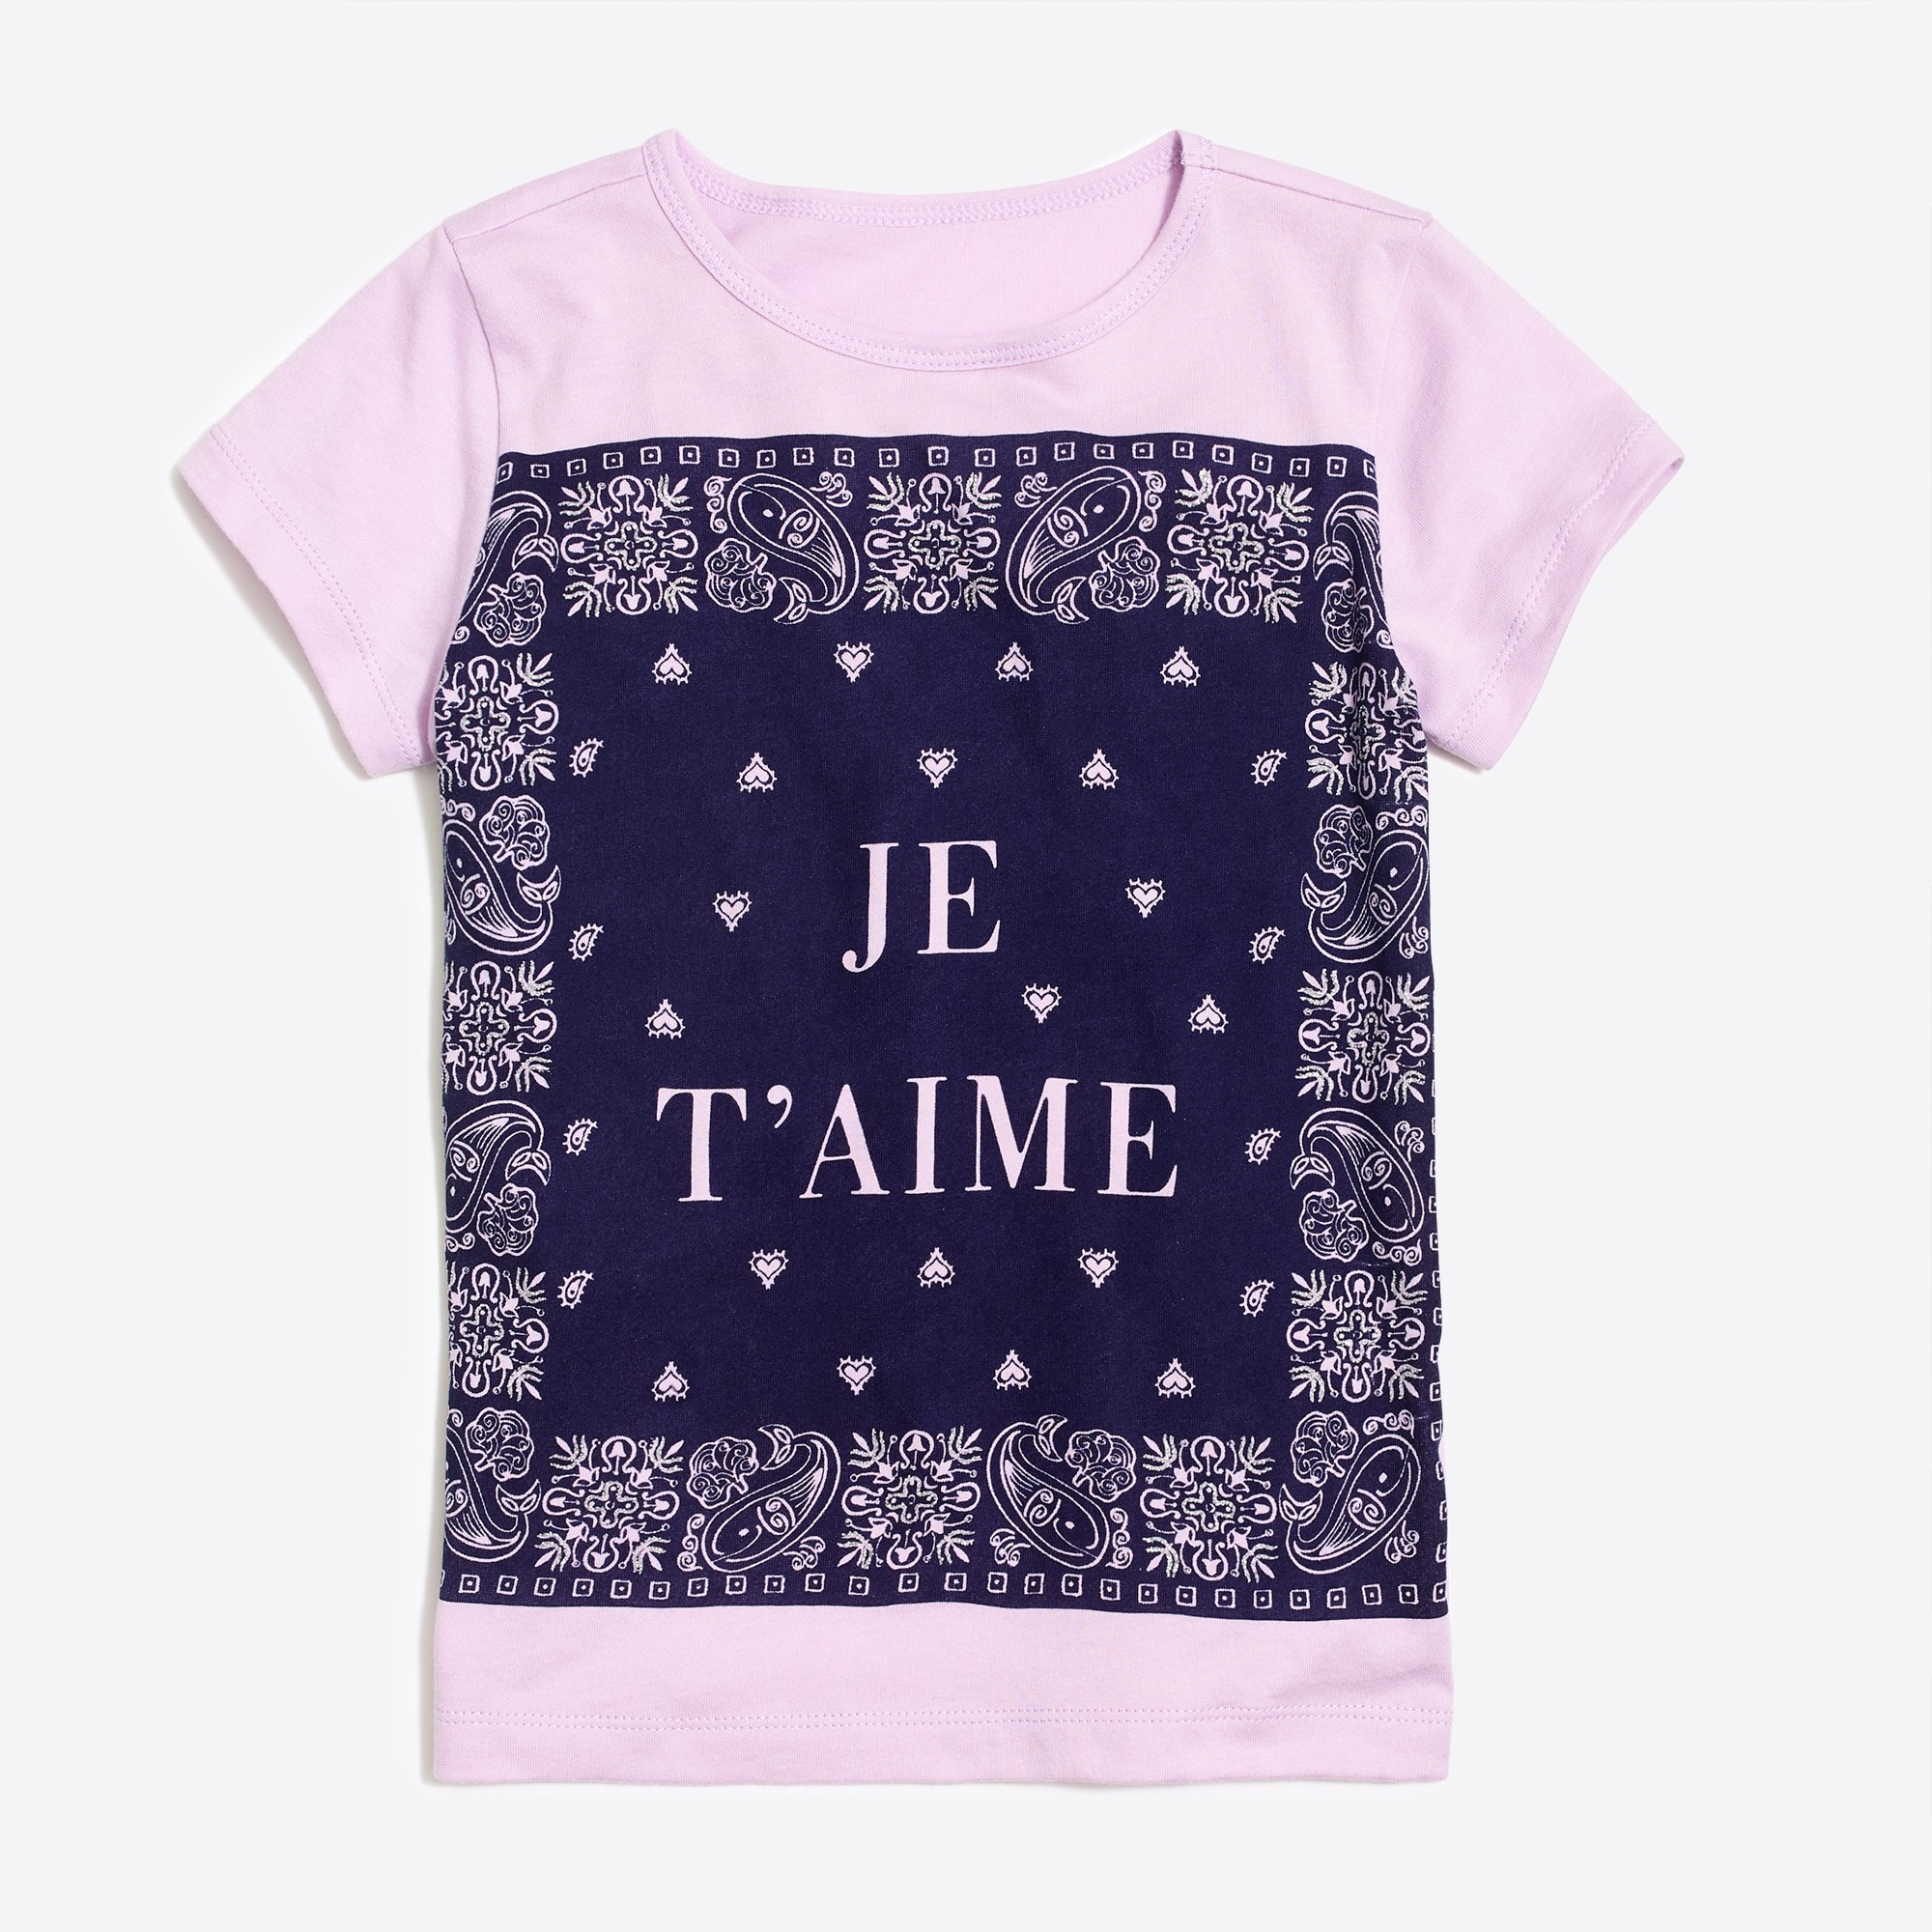 Image 1 for Girls' je t'aime bandana graphic T-shirt